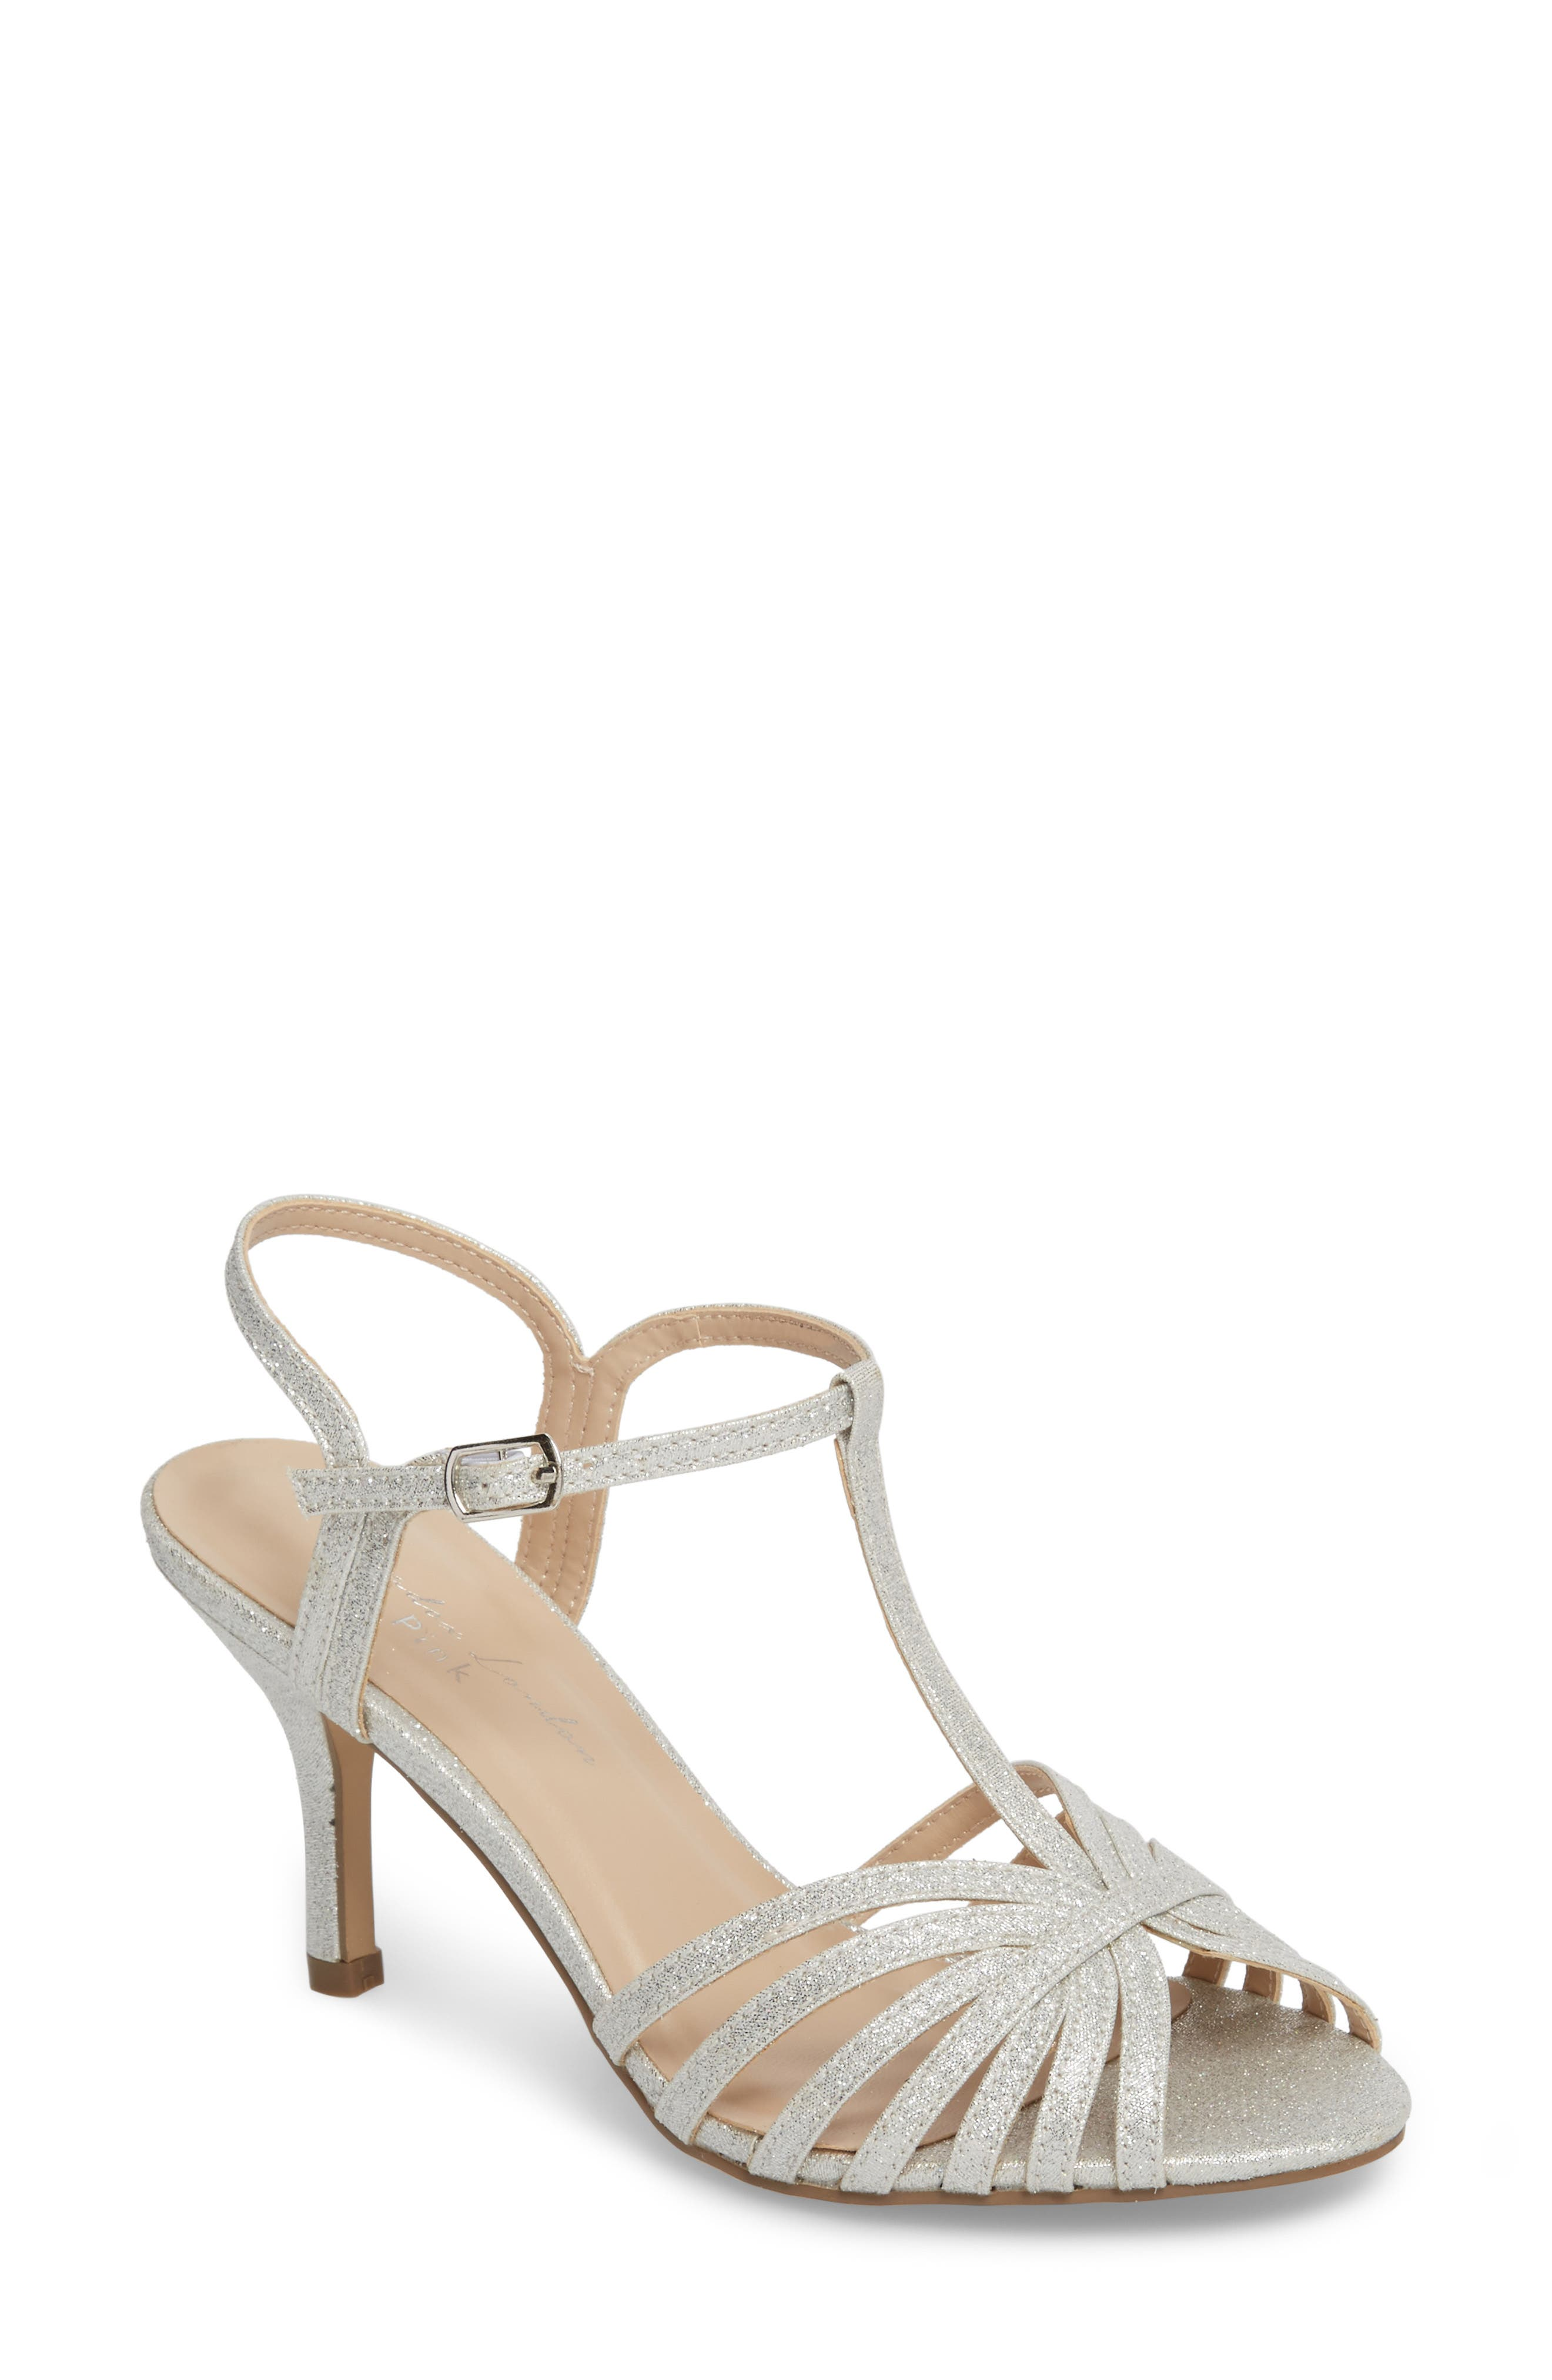 Maggie T-Strap Sandal,                             Main thumbnail 1, color,                             SILVER GLITTER